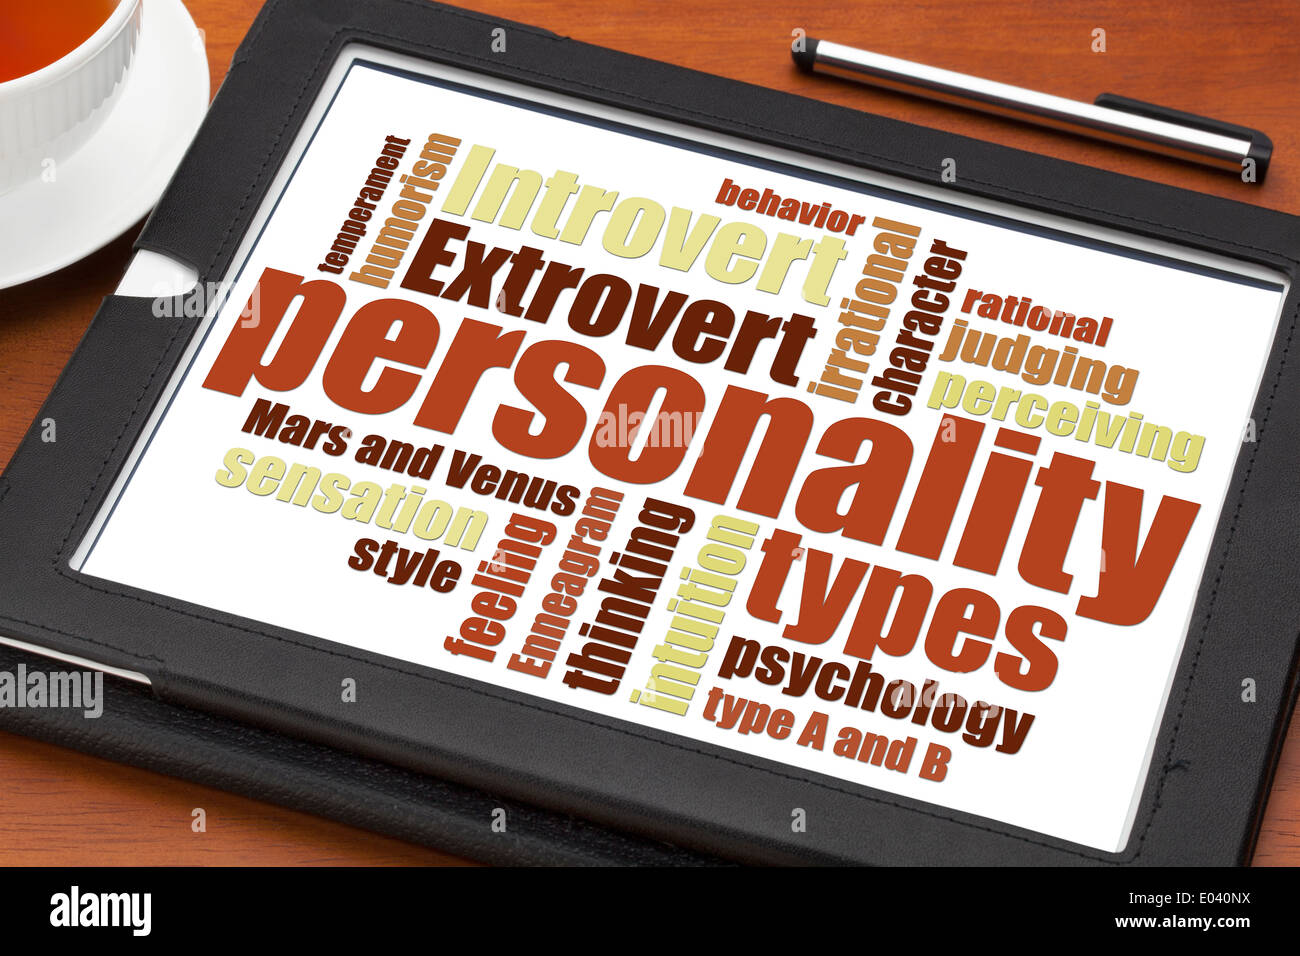 personality types word cloud on a digital tablet with a cup of tea - Stock Image